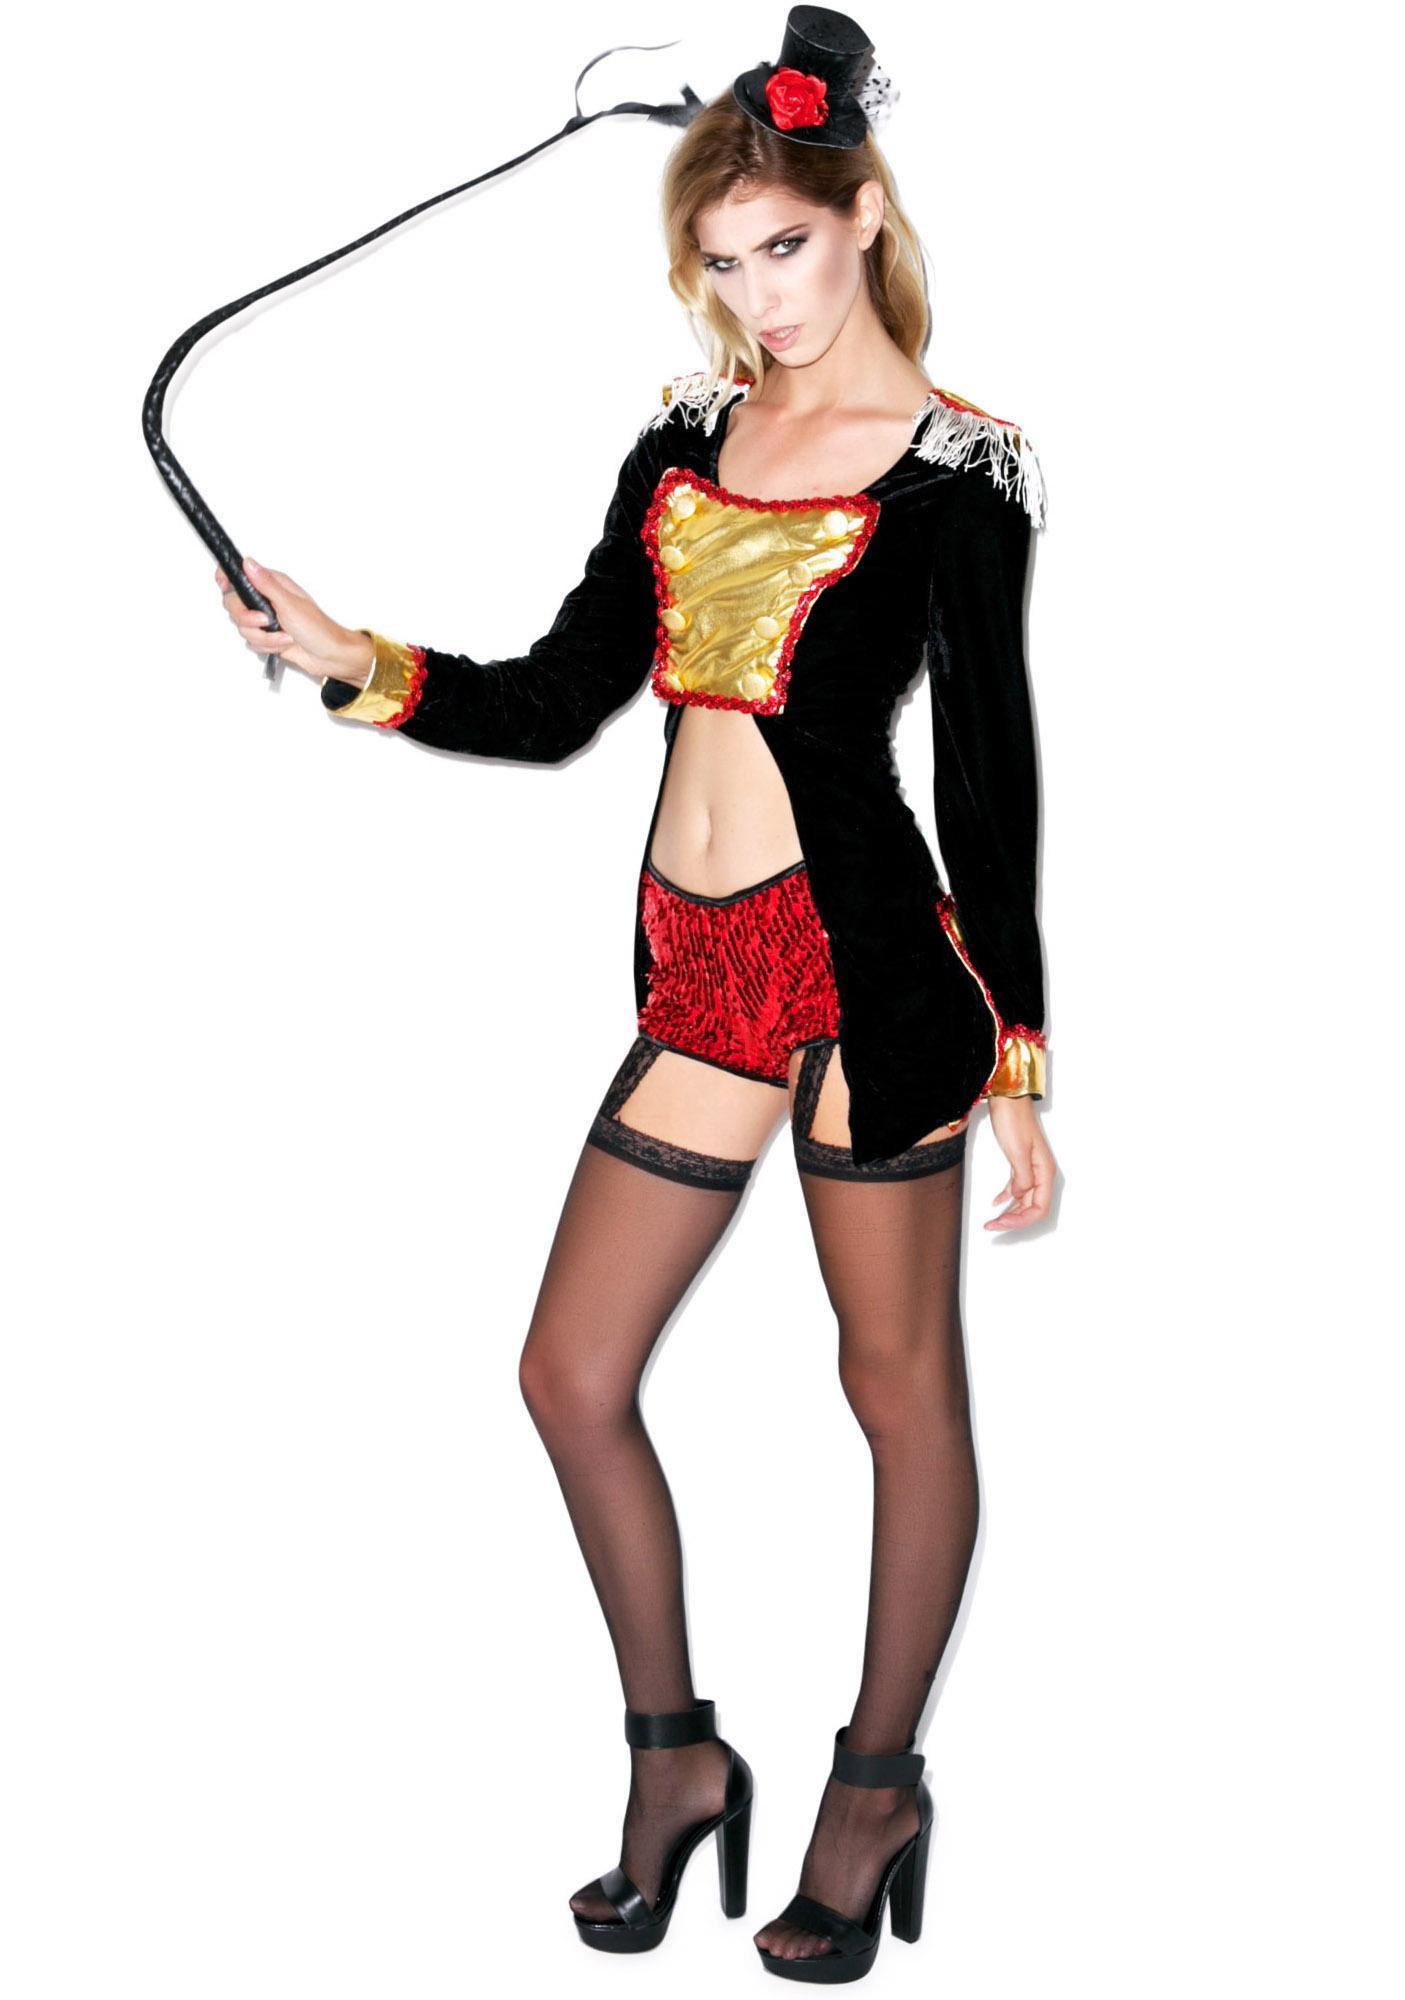 The Ringleader Costume